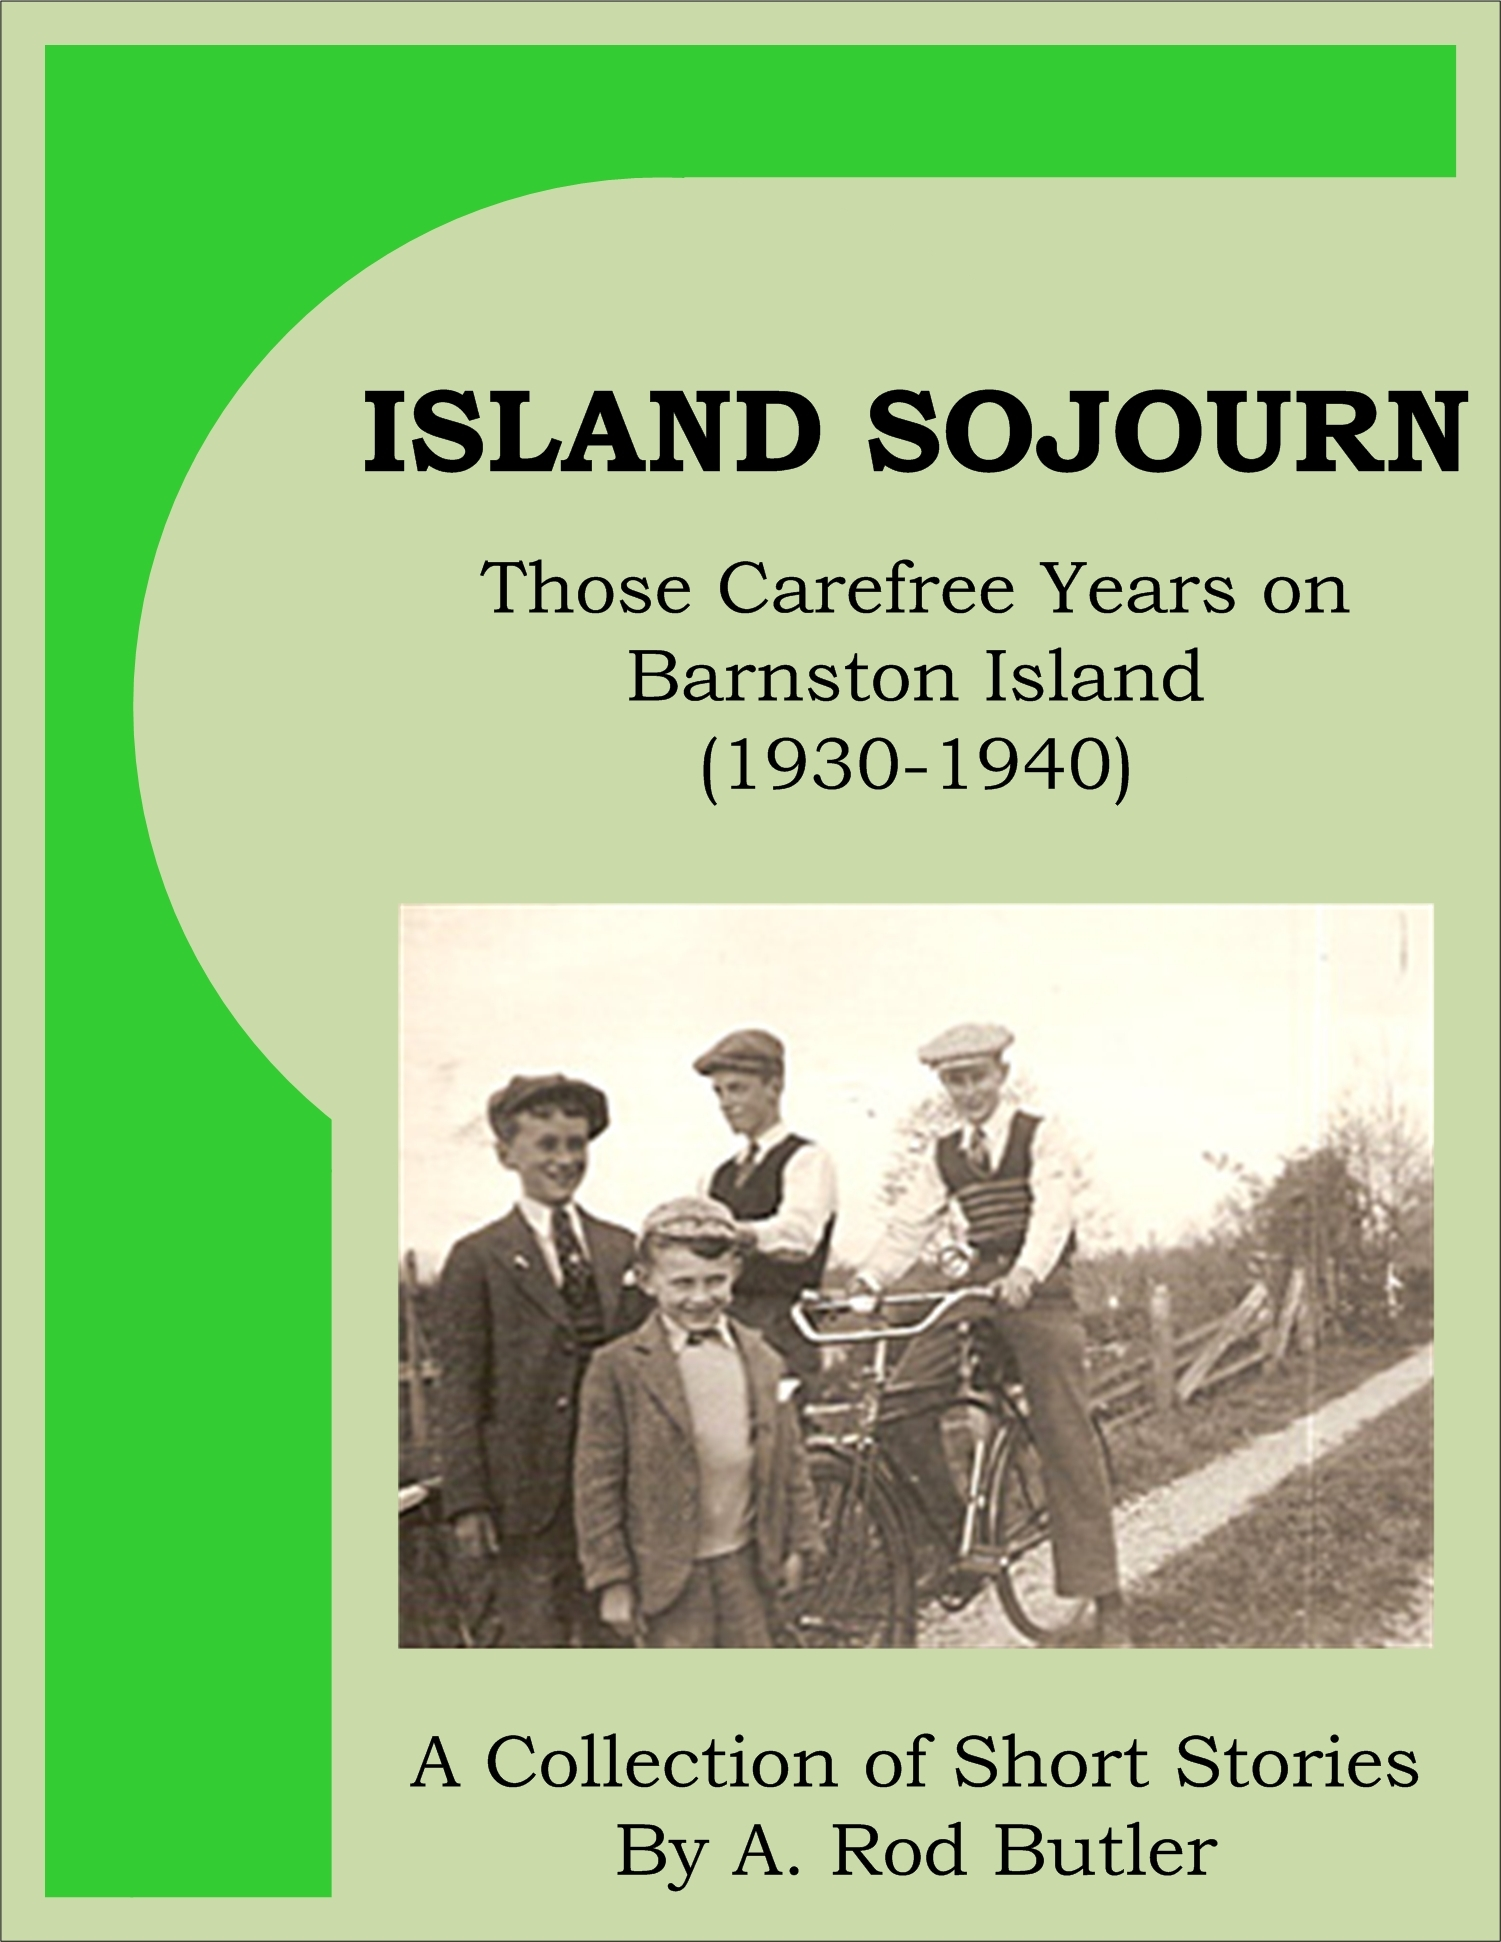 Island Sojourn - Those Carefree Years on Barnston Island (1930-1940) By: Rod Butler